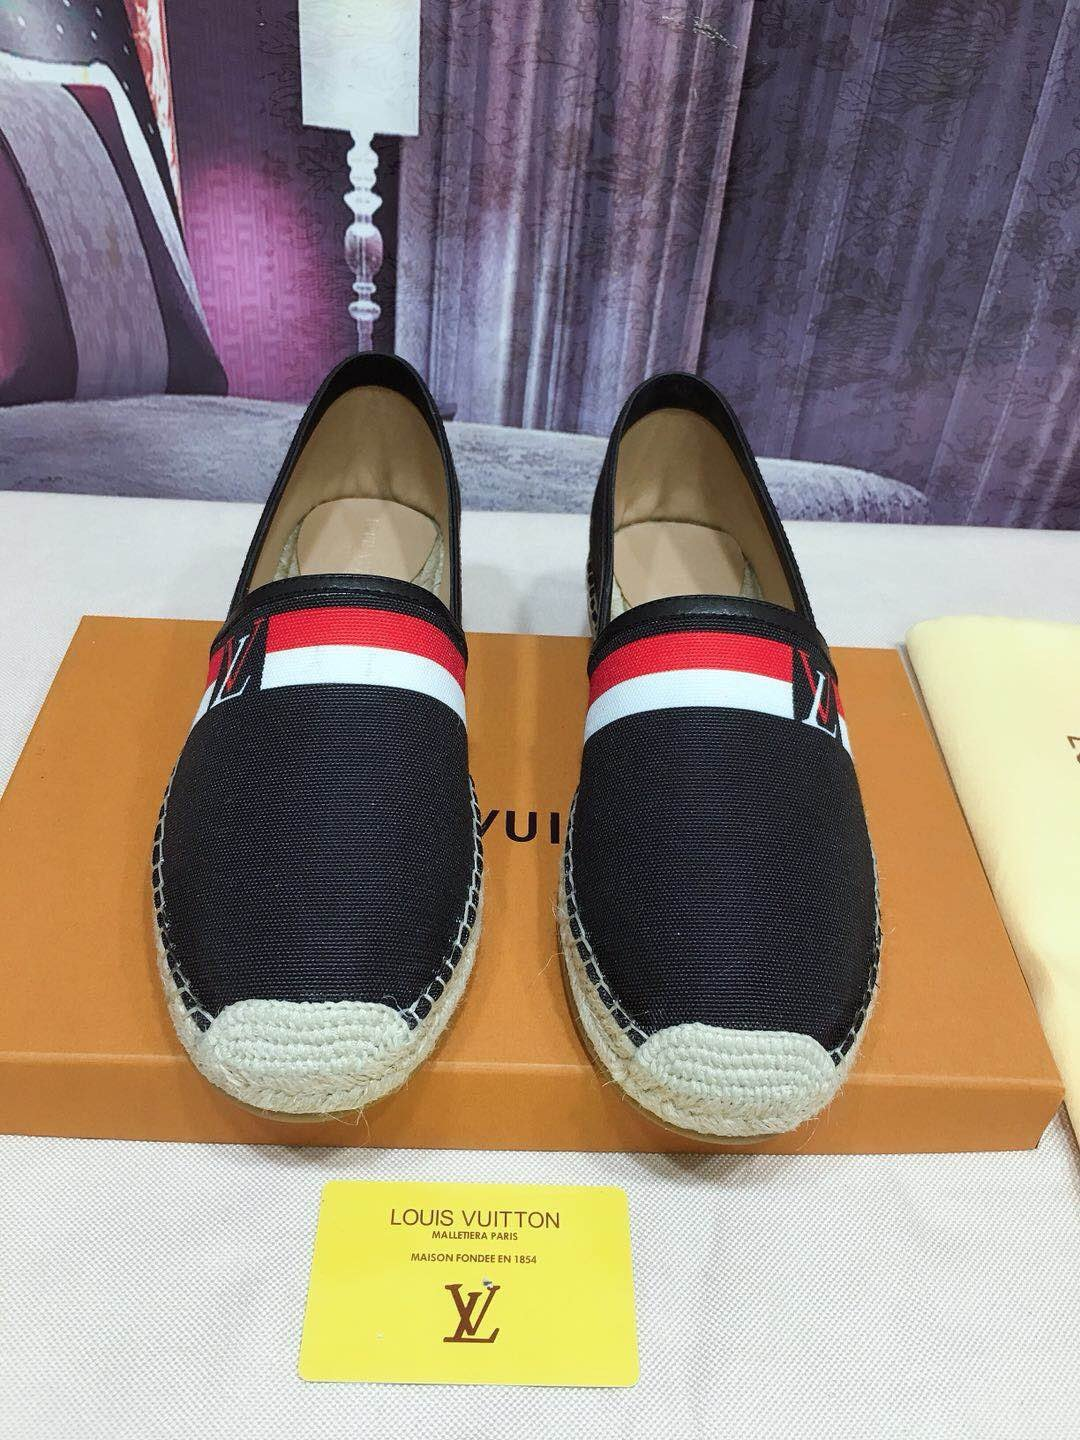 Replica Louis Vuitton Men Shoes 0008